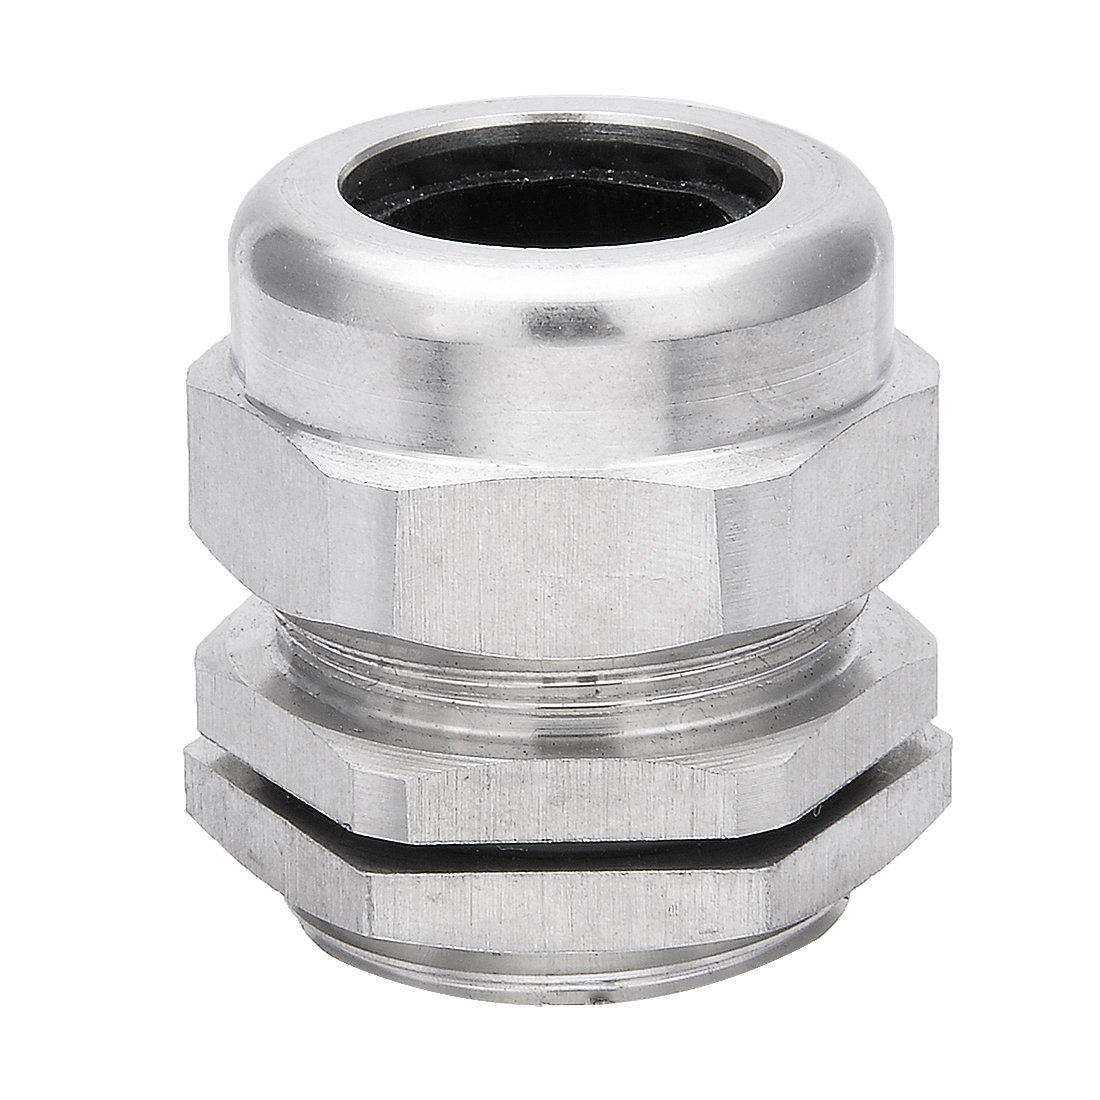 uxcell Cable Gland Waterproof G3/4 Stainless Steel Cable Glands Joints Adjustable Connector for 13-18mm Dia Cable